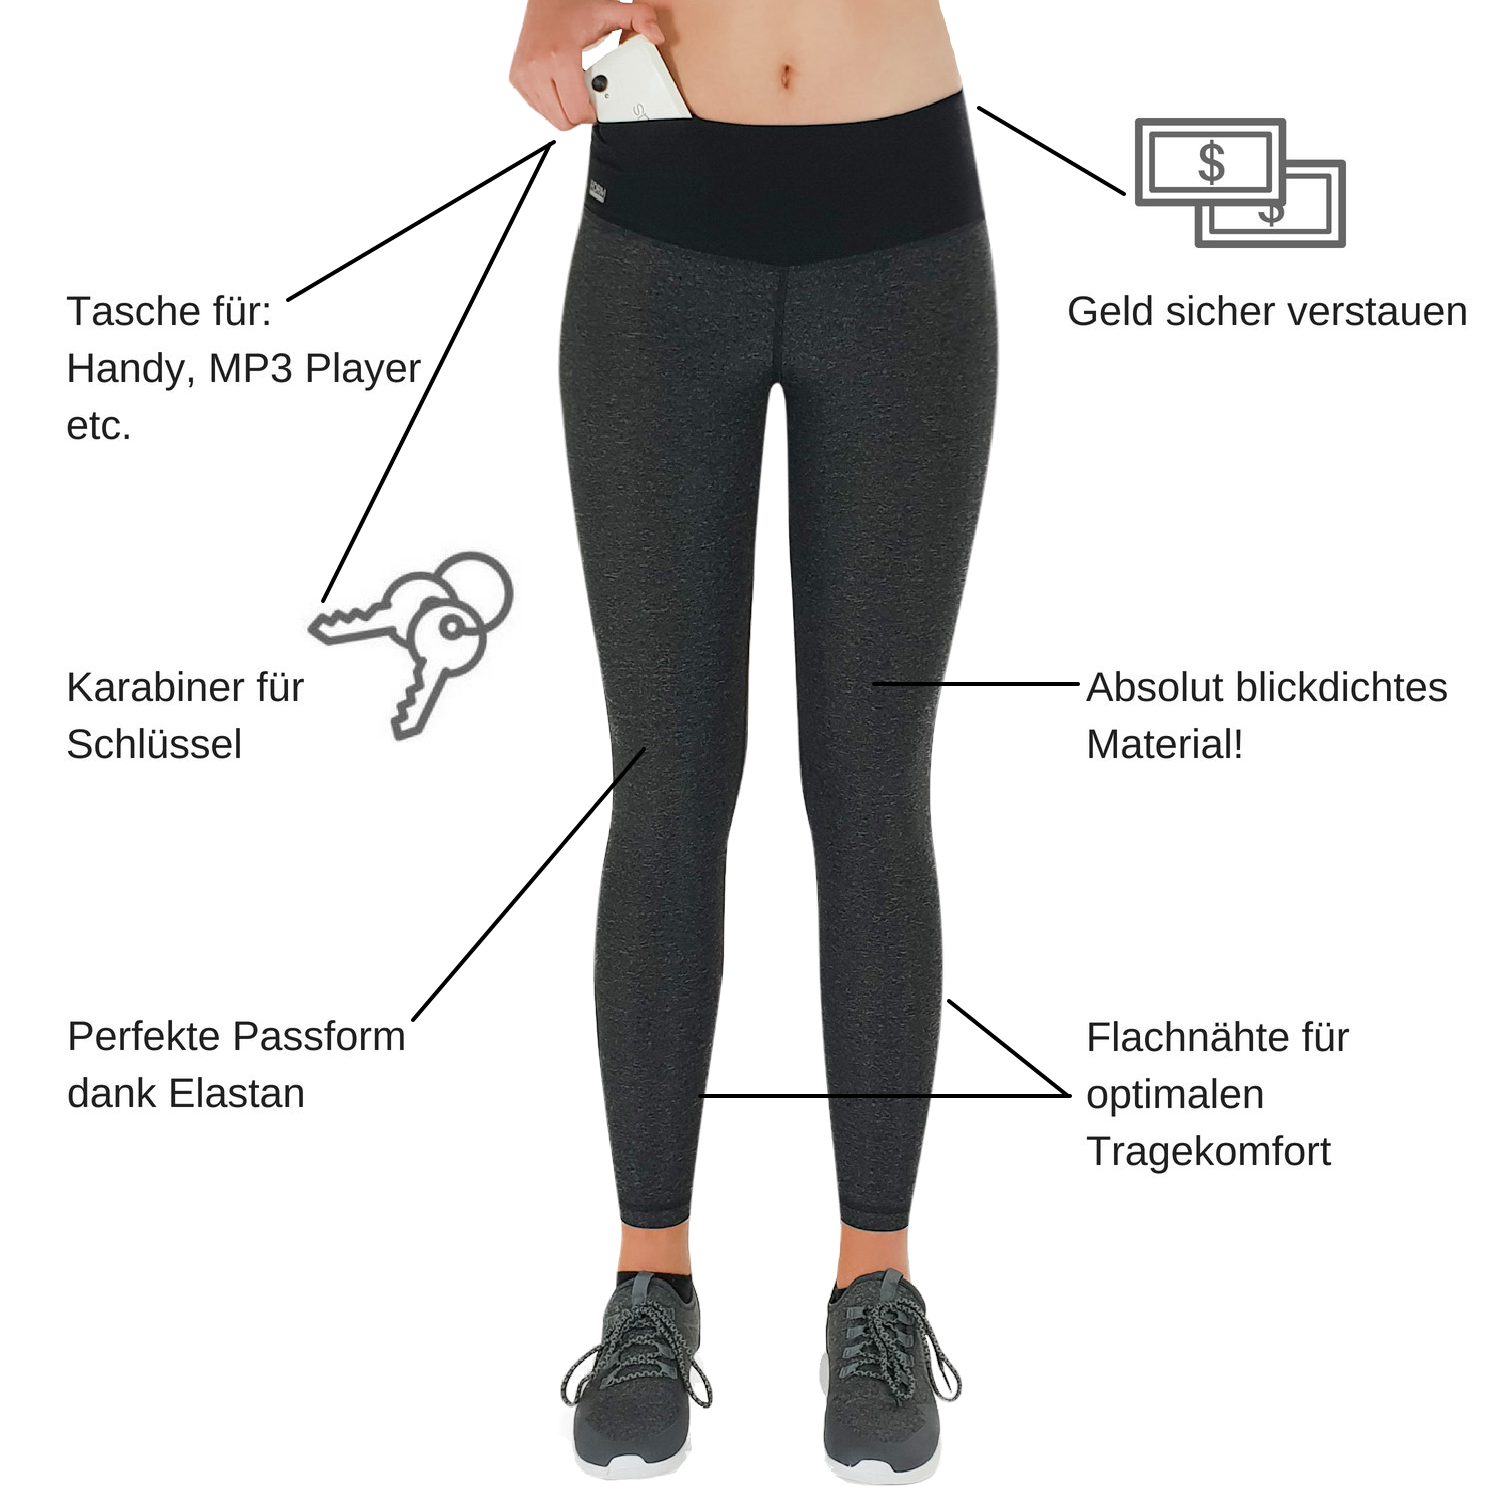 Damen Leggings Lang - Infografik